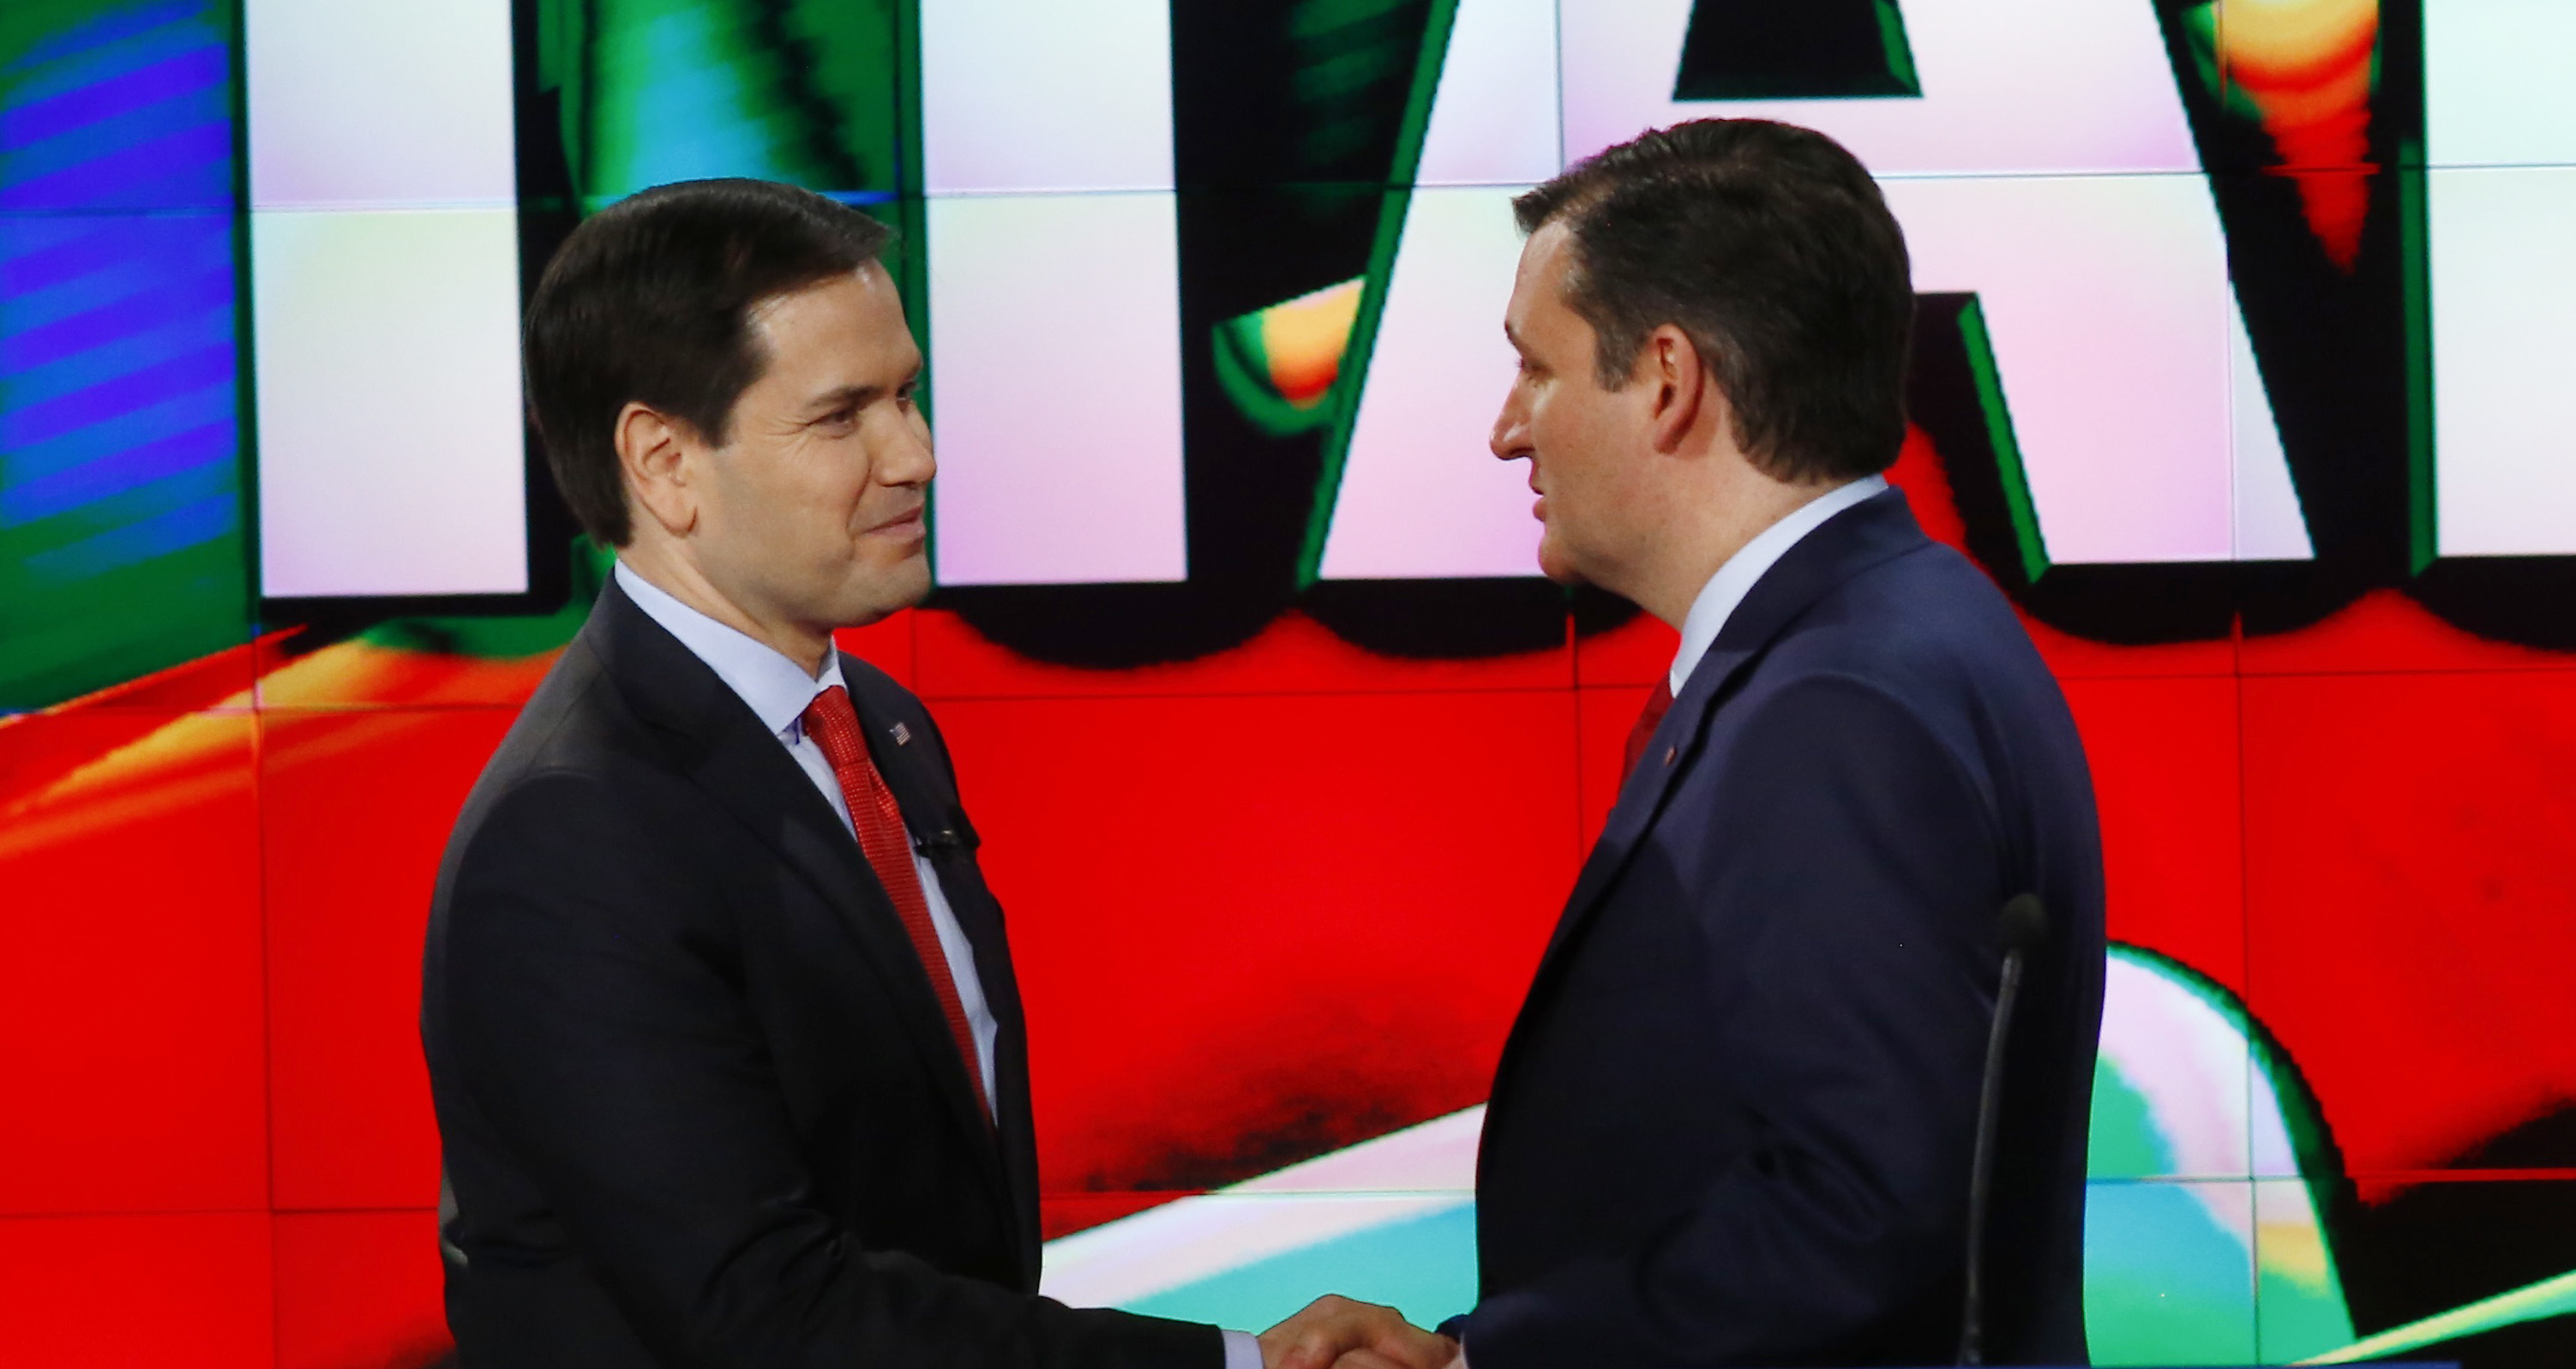 Republican U.S. presidential candidates Rubio and Cruz shake hands at the conclusion of the debate sponsored by CNN for the 2016 Republican U.S. presidential candidates in Houston